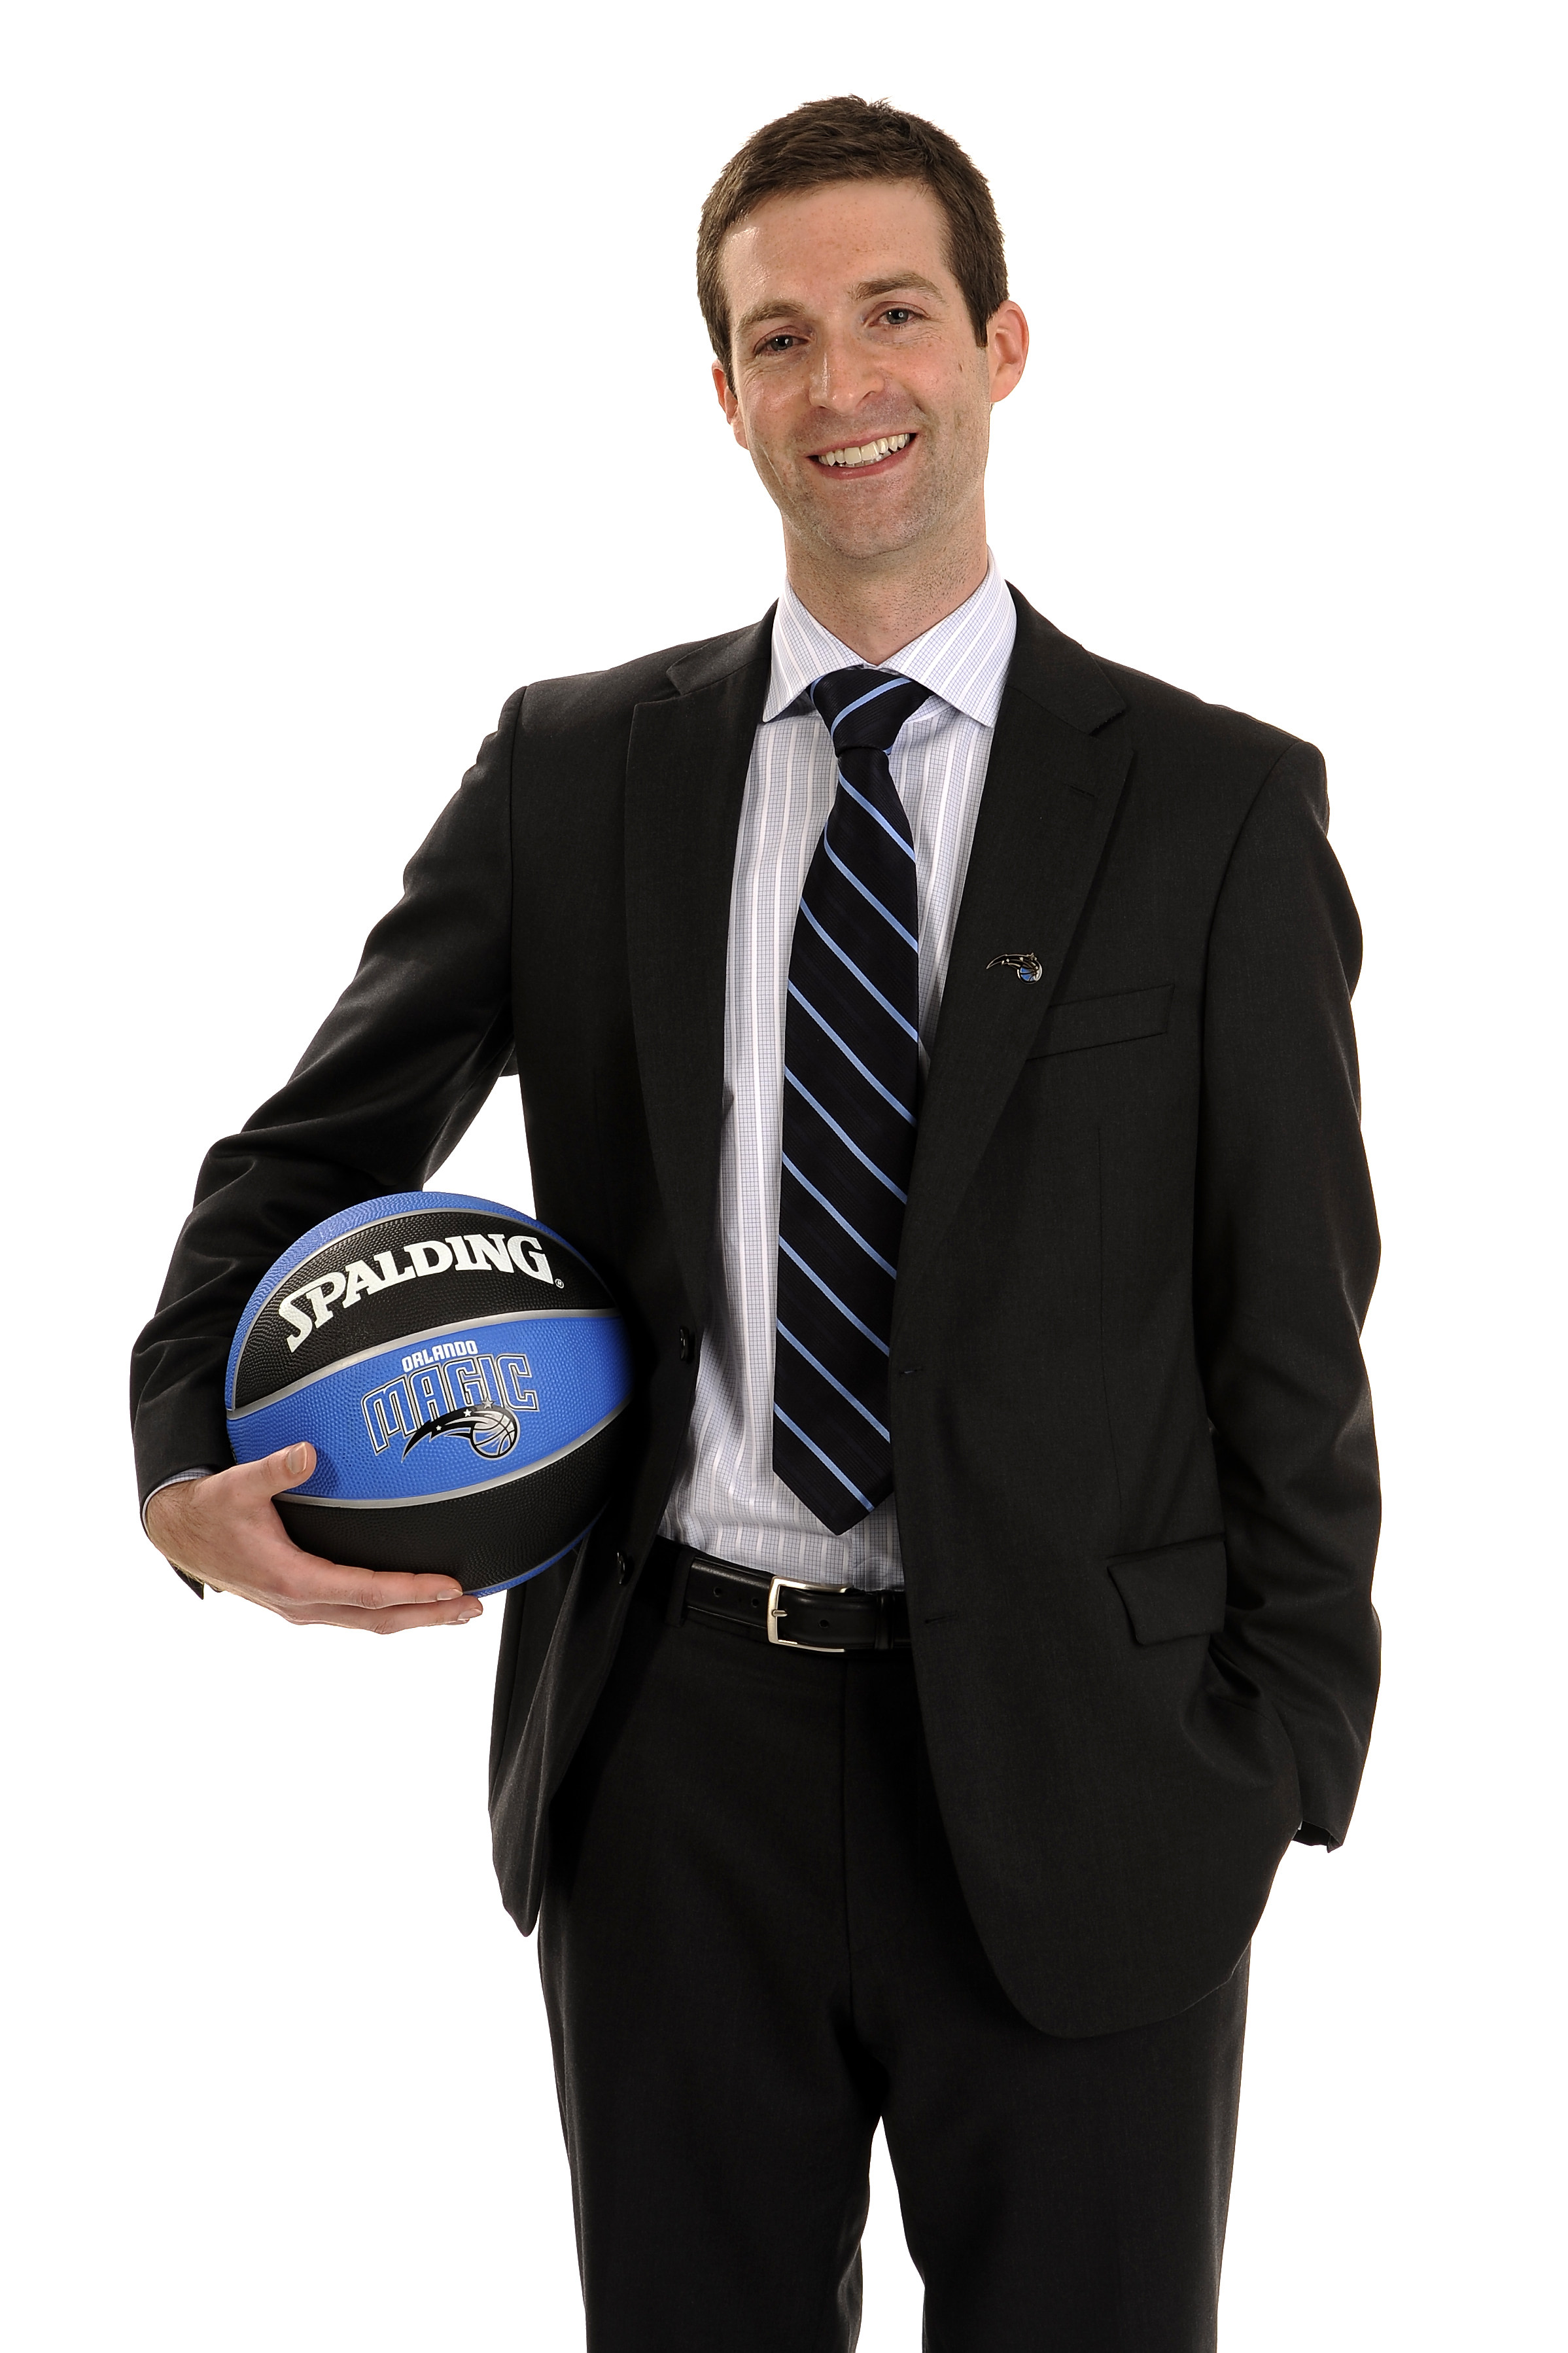 062112_Hennigan_with_ball_posed_FM_M149618